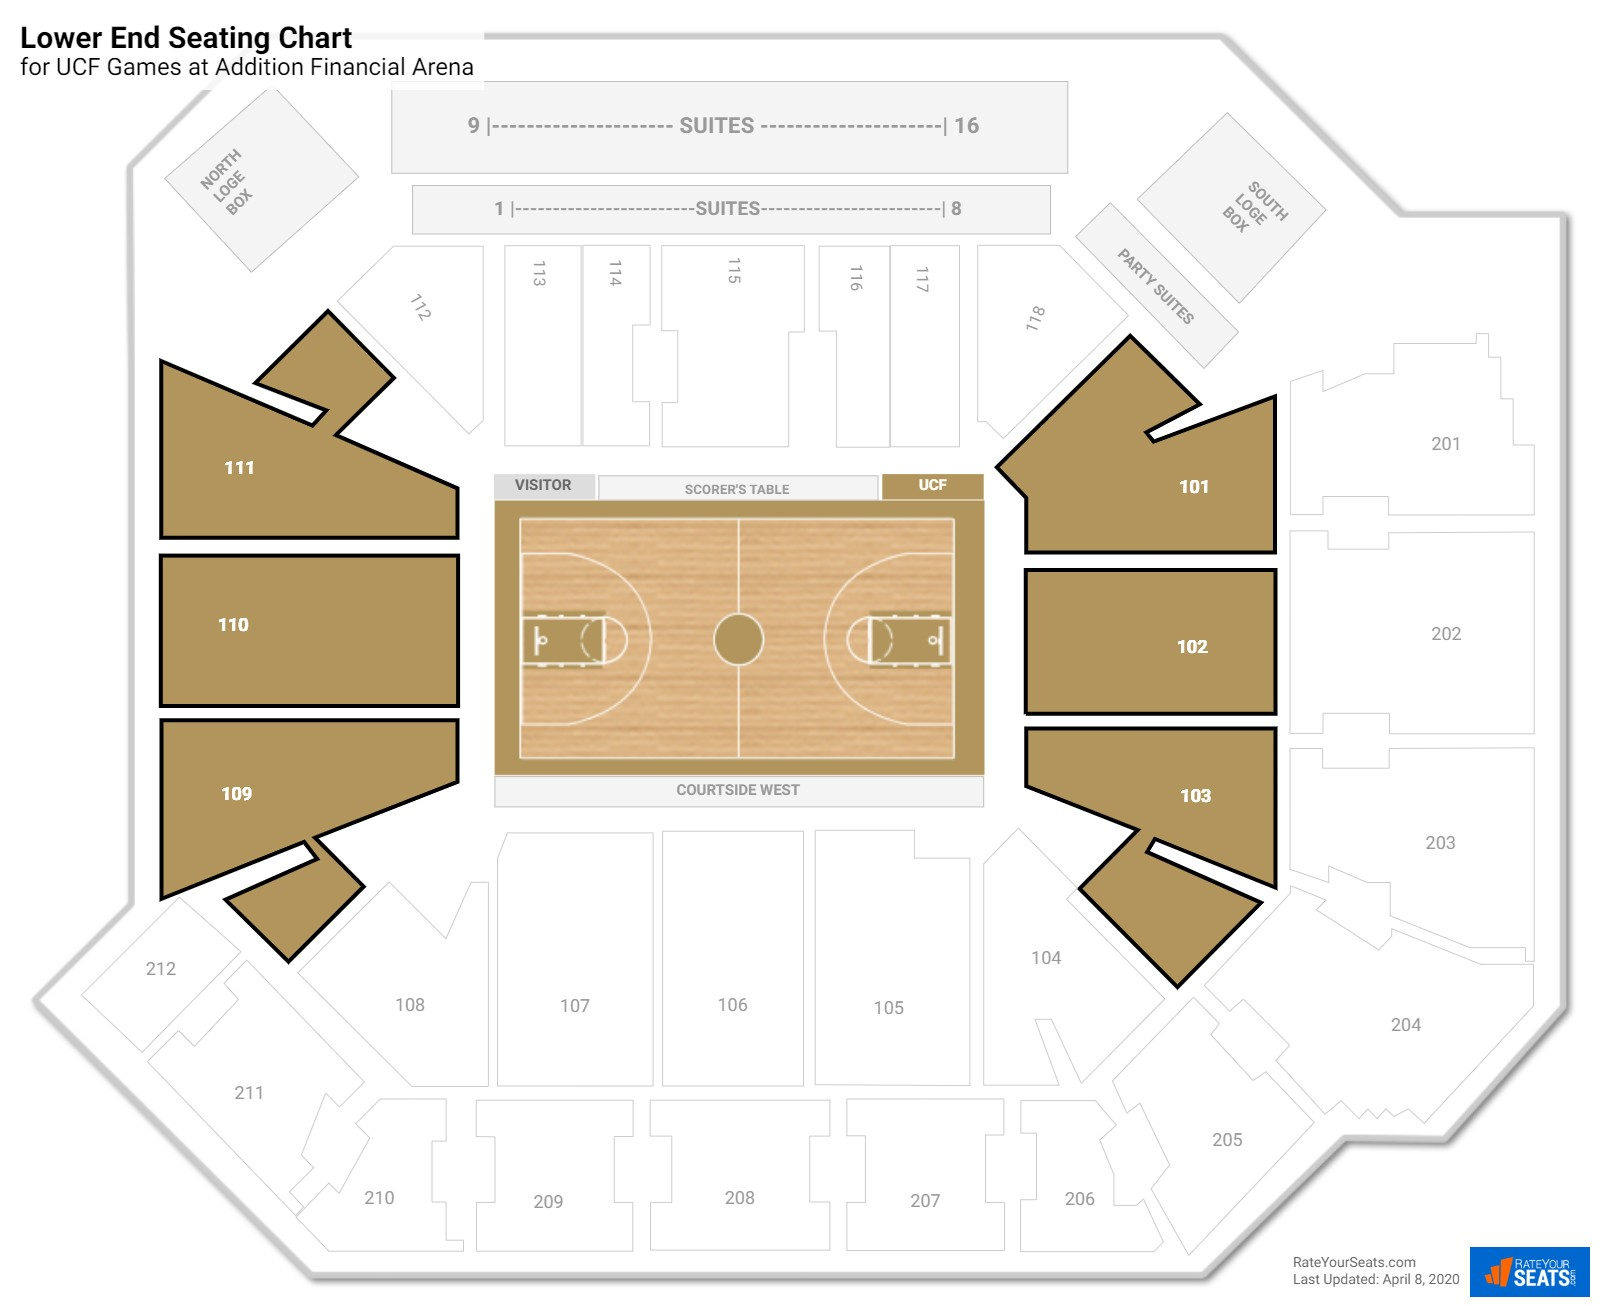 CFE Arena Lower Baseline seating chart